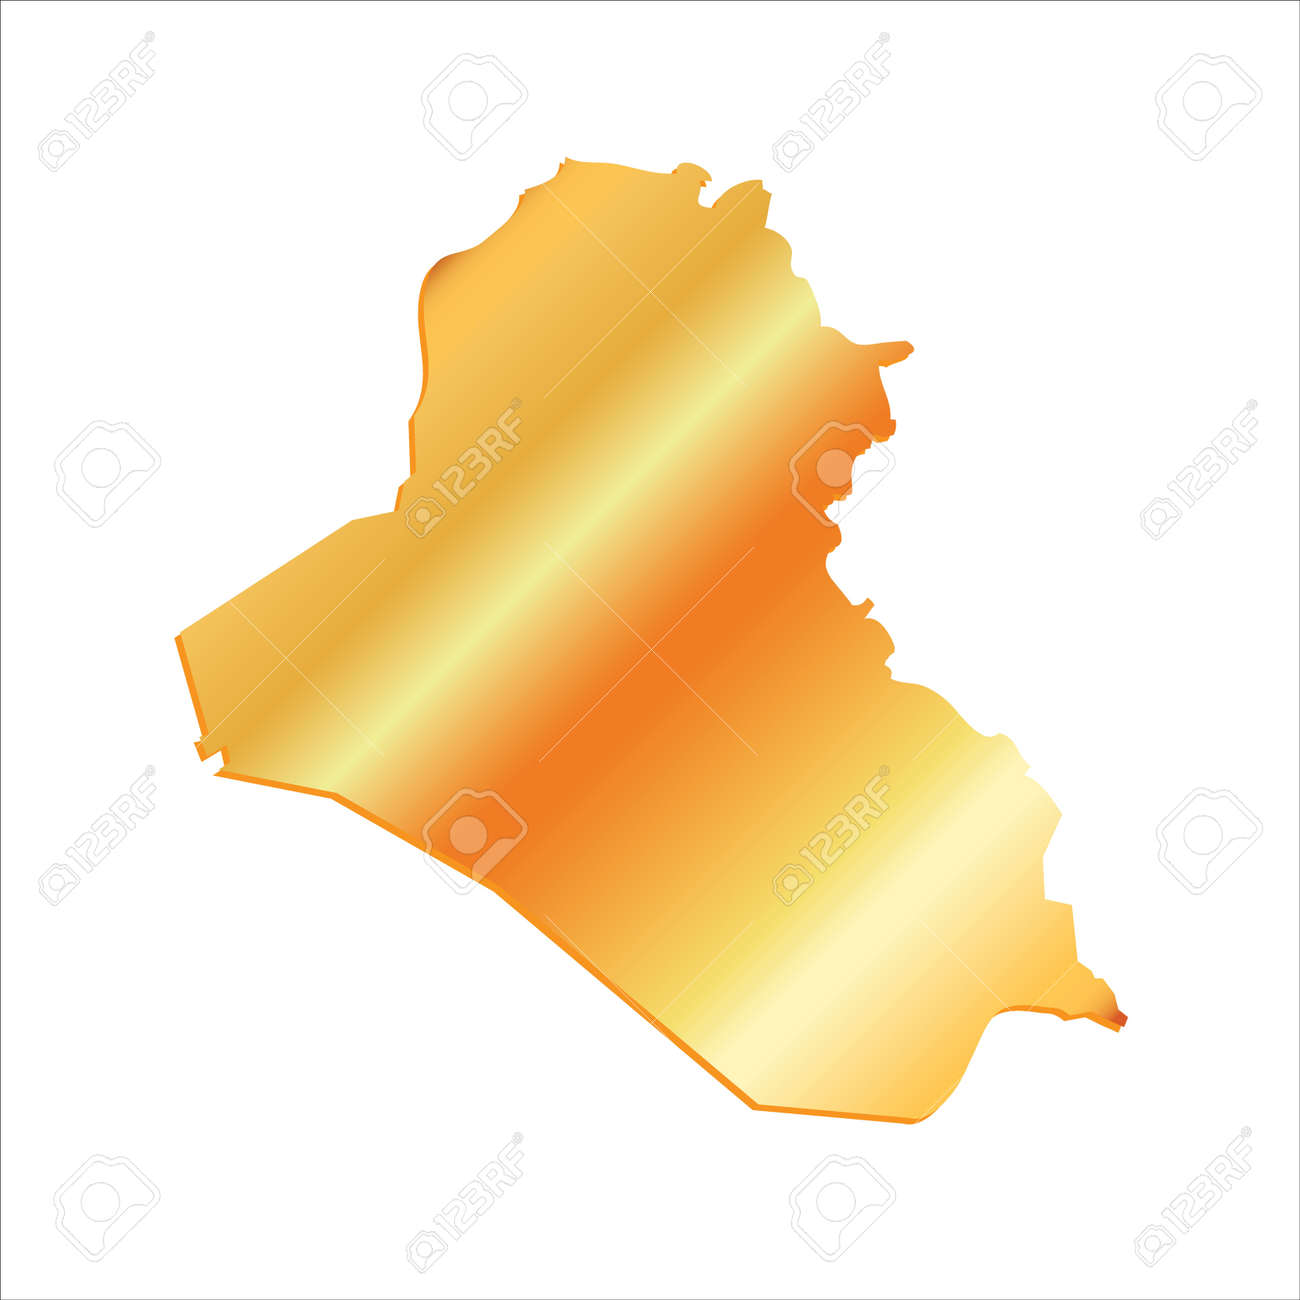 D Iraq Gold Outline Map With Shadow Royalty Free Cliparts - Iraq map outline